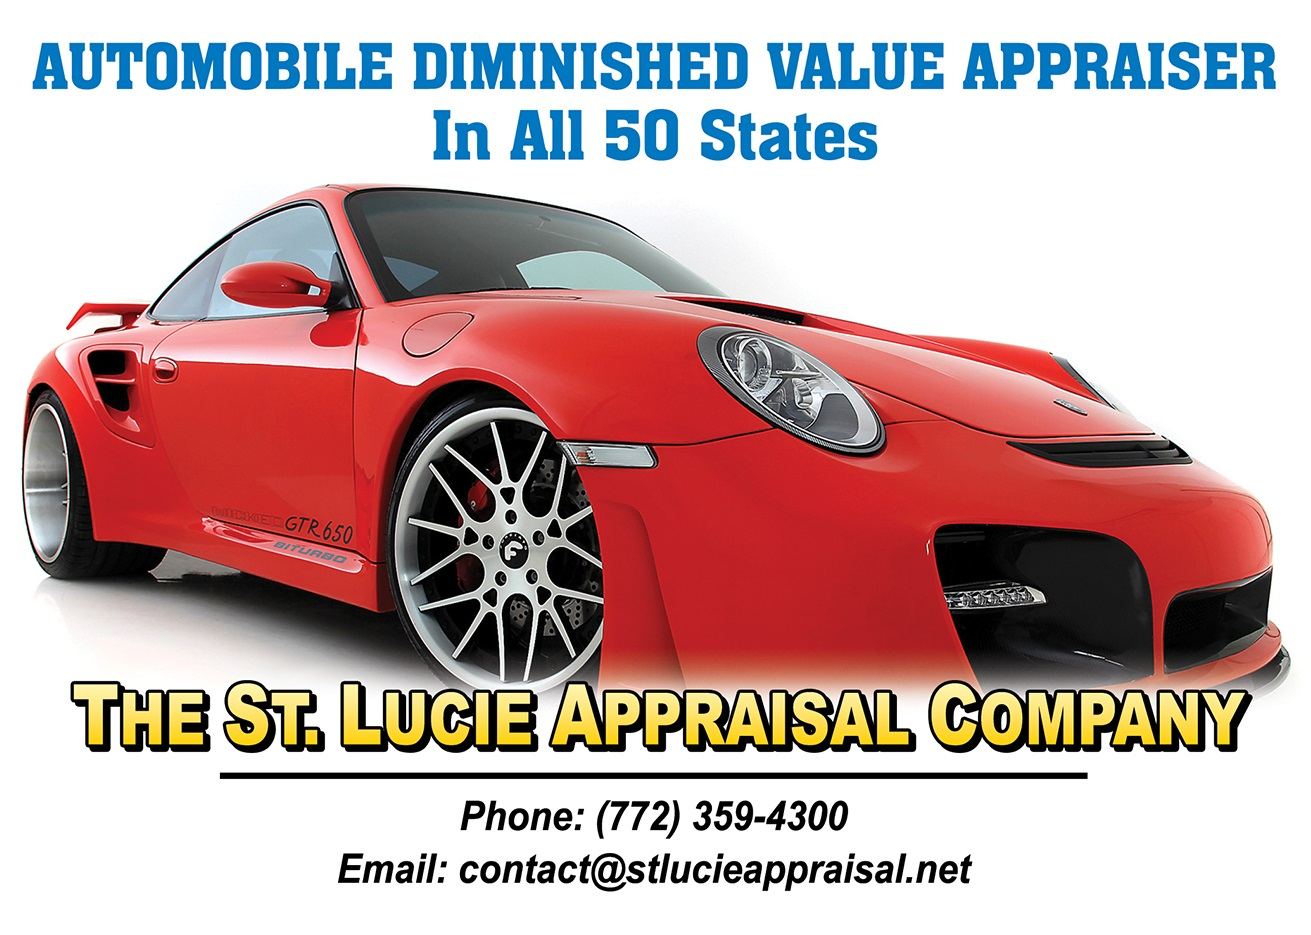 auto diminished value appraiser